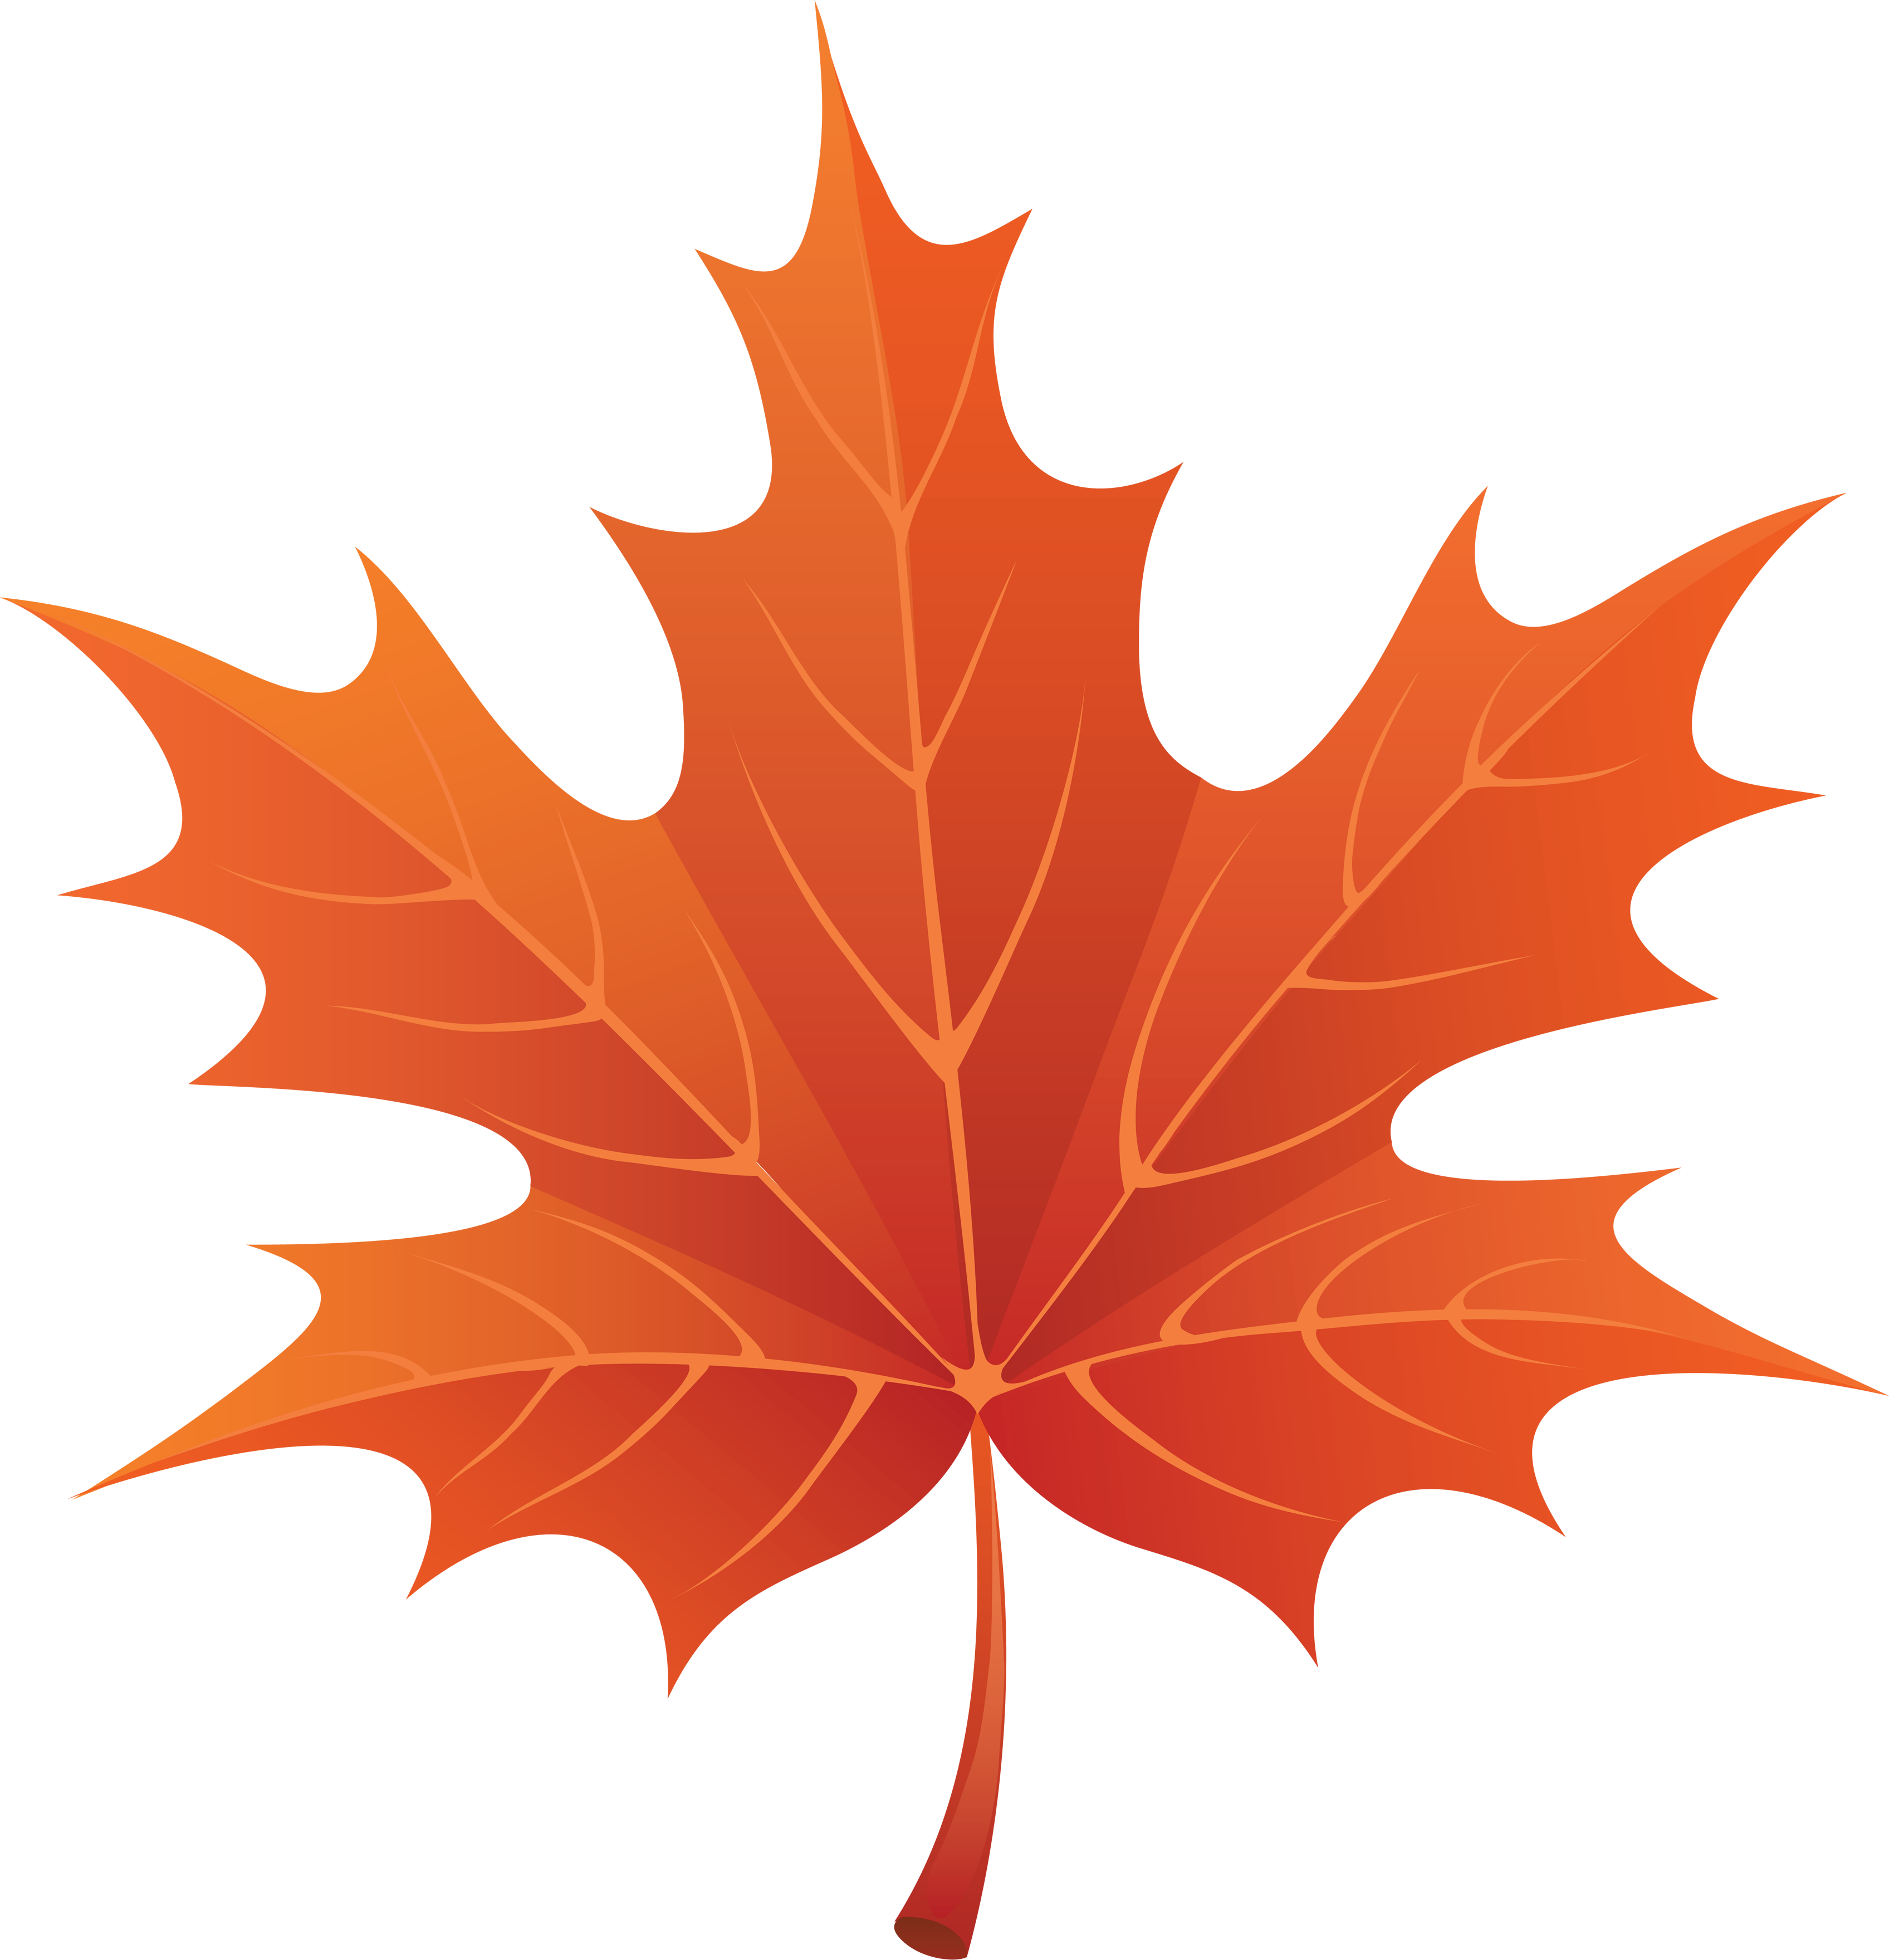 Fall Clip Art Images Free Cliparts Co. D-Fall Clip Art Images Free Cliparts Co. Download Png Image Maple Png Leaf-9